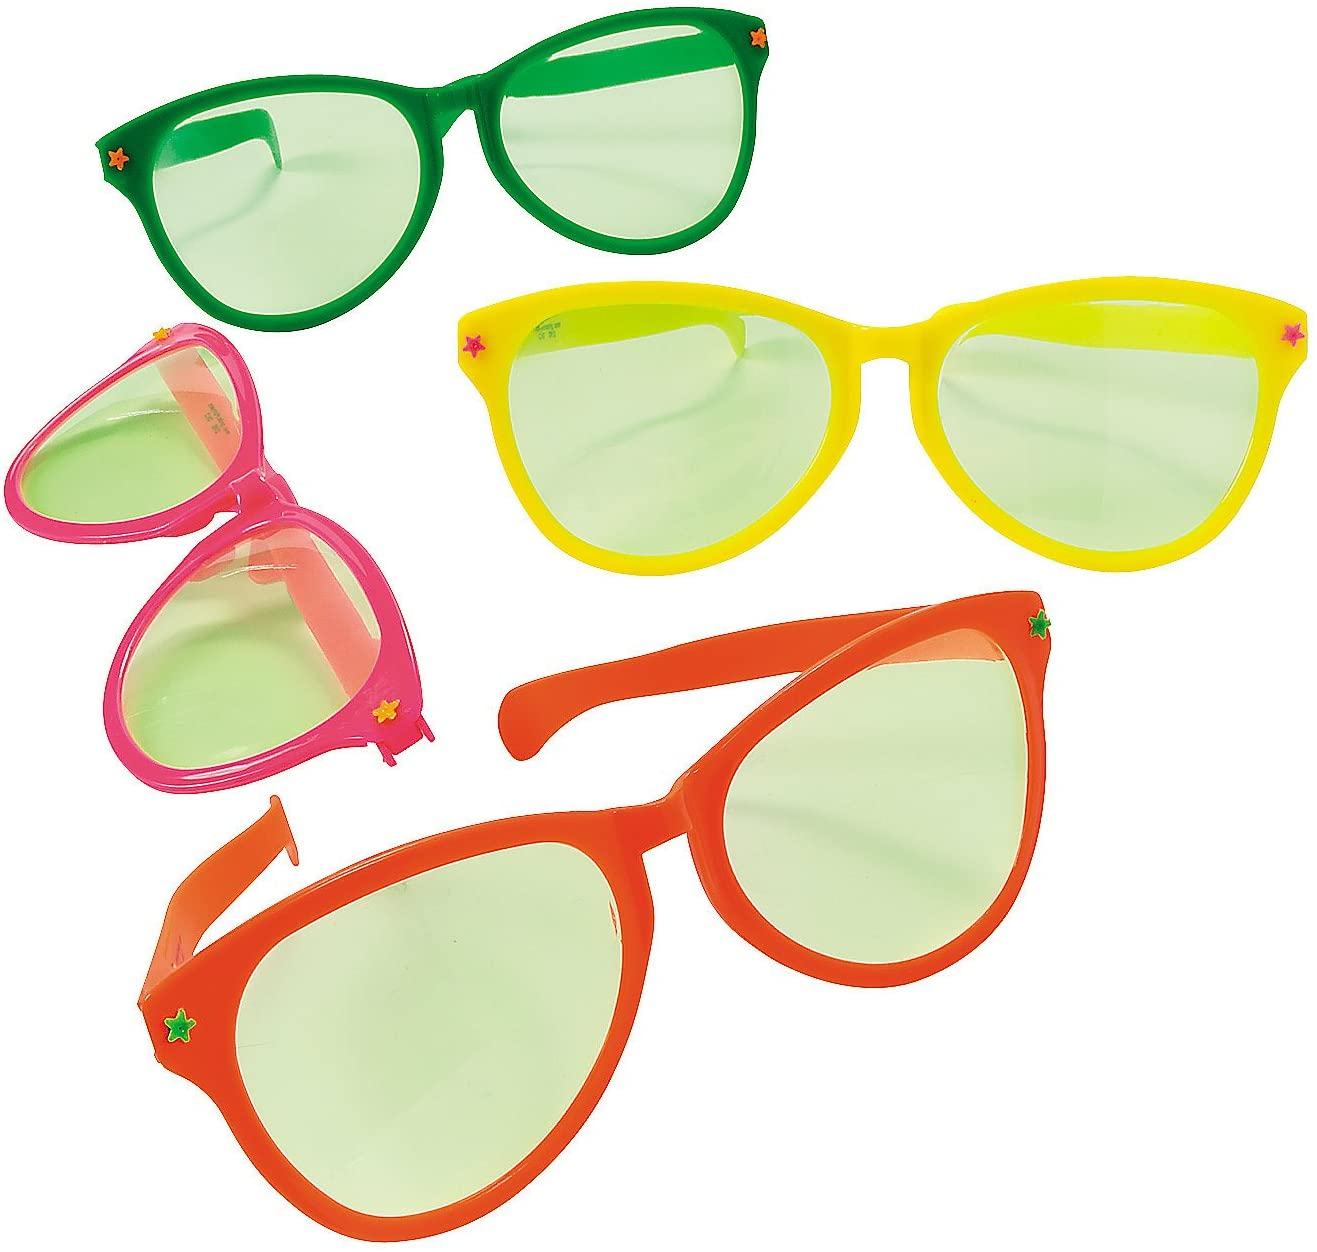 Jumbo Gigantic Wacky Sunglasses for Party - 12 Pieces